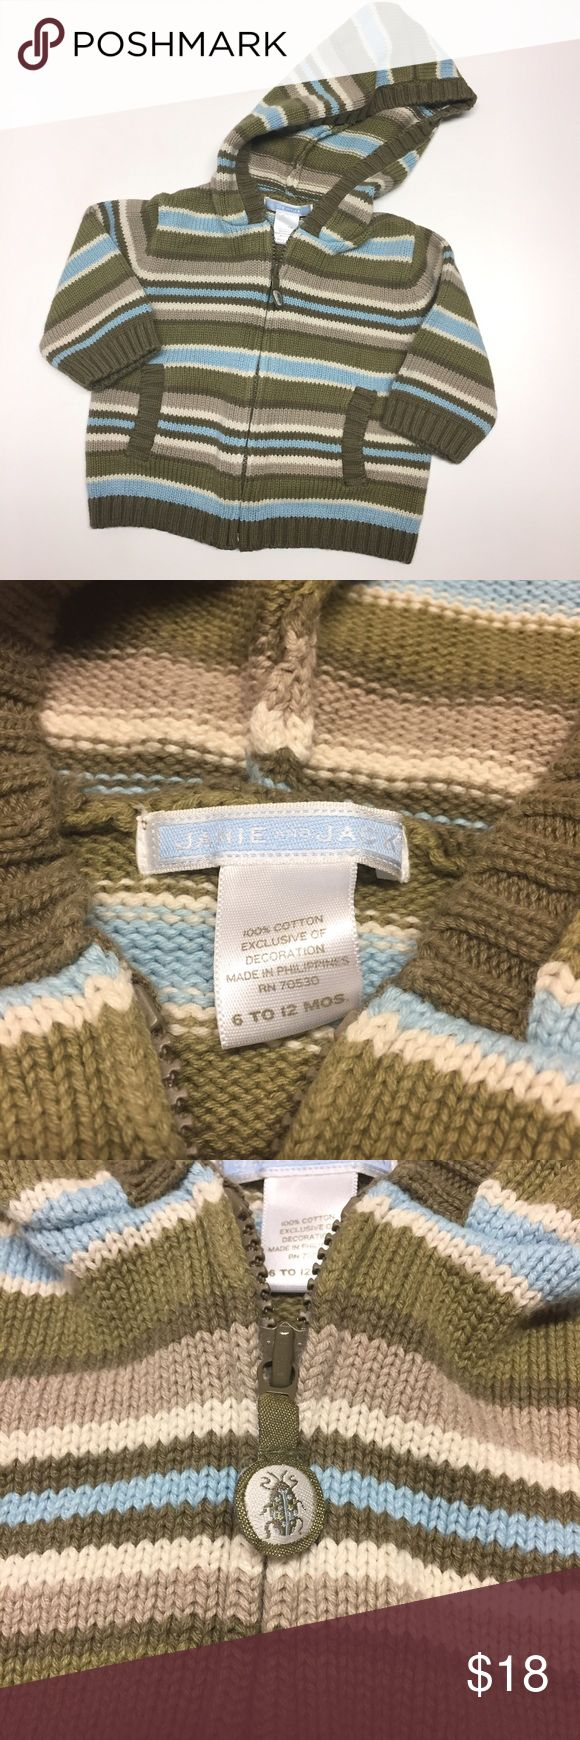 Janie and Jack Blue hooded sweater Janie and Jack Green and Blur Striped Zipper Front Hooded Sweater. Size 6-12 months. Excellent condition. Janie and Jack Shirts & Tops Sweaters